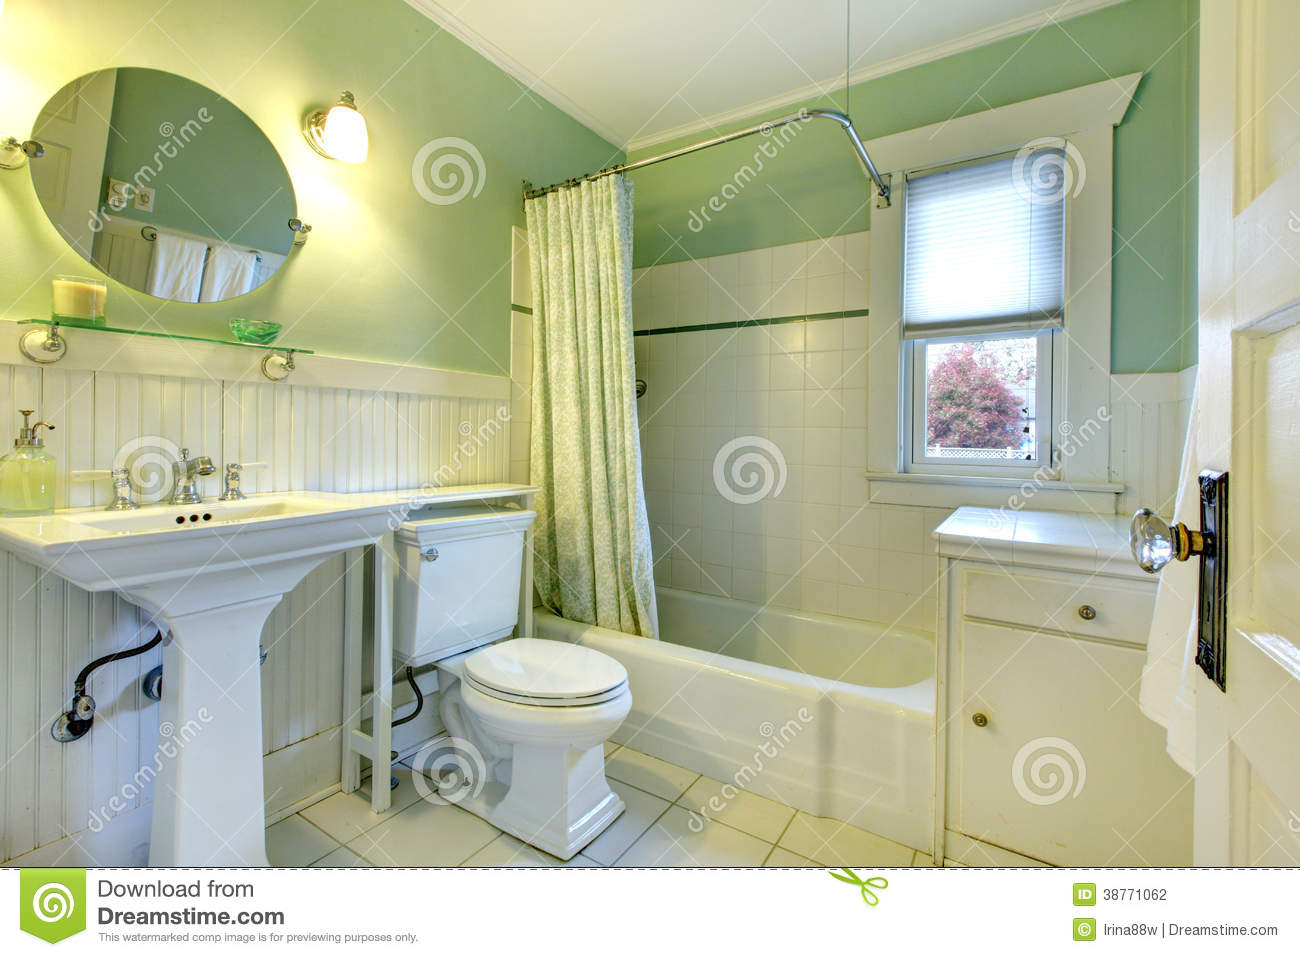 Refreshing mint bathroom stock photo. Image of bath ...